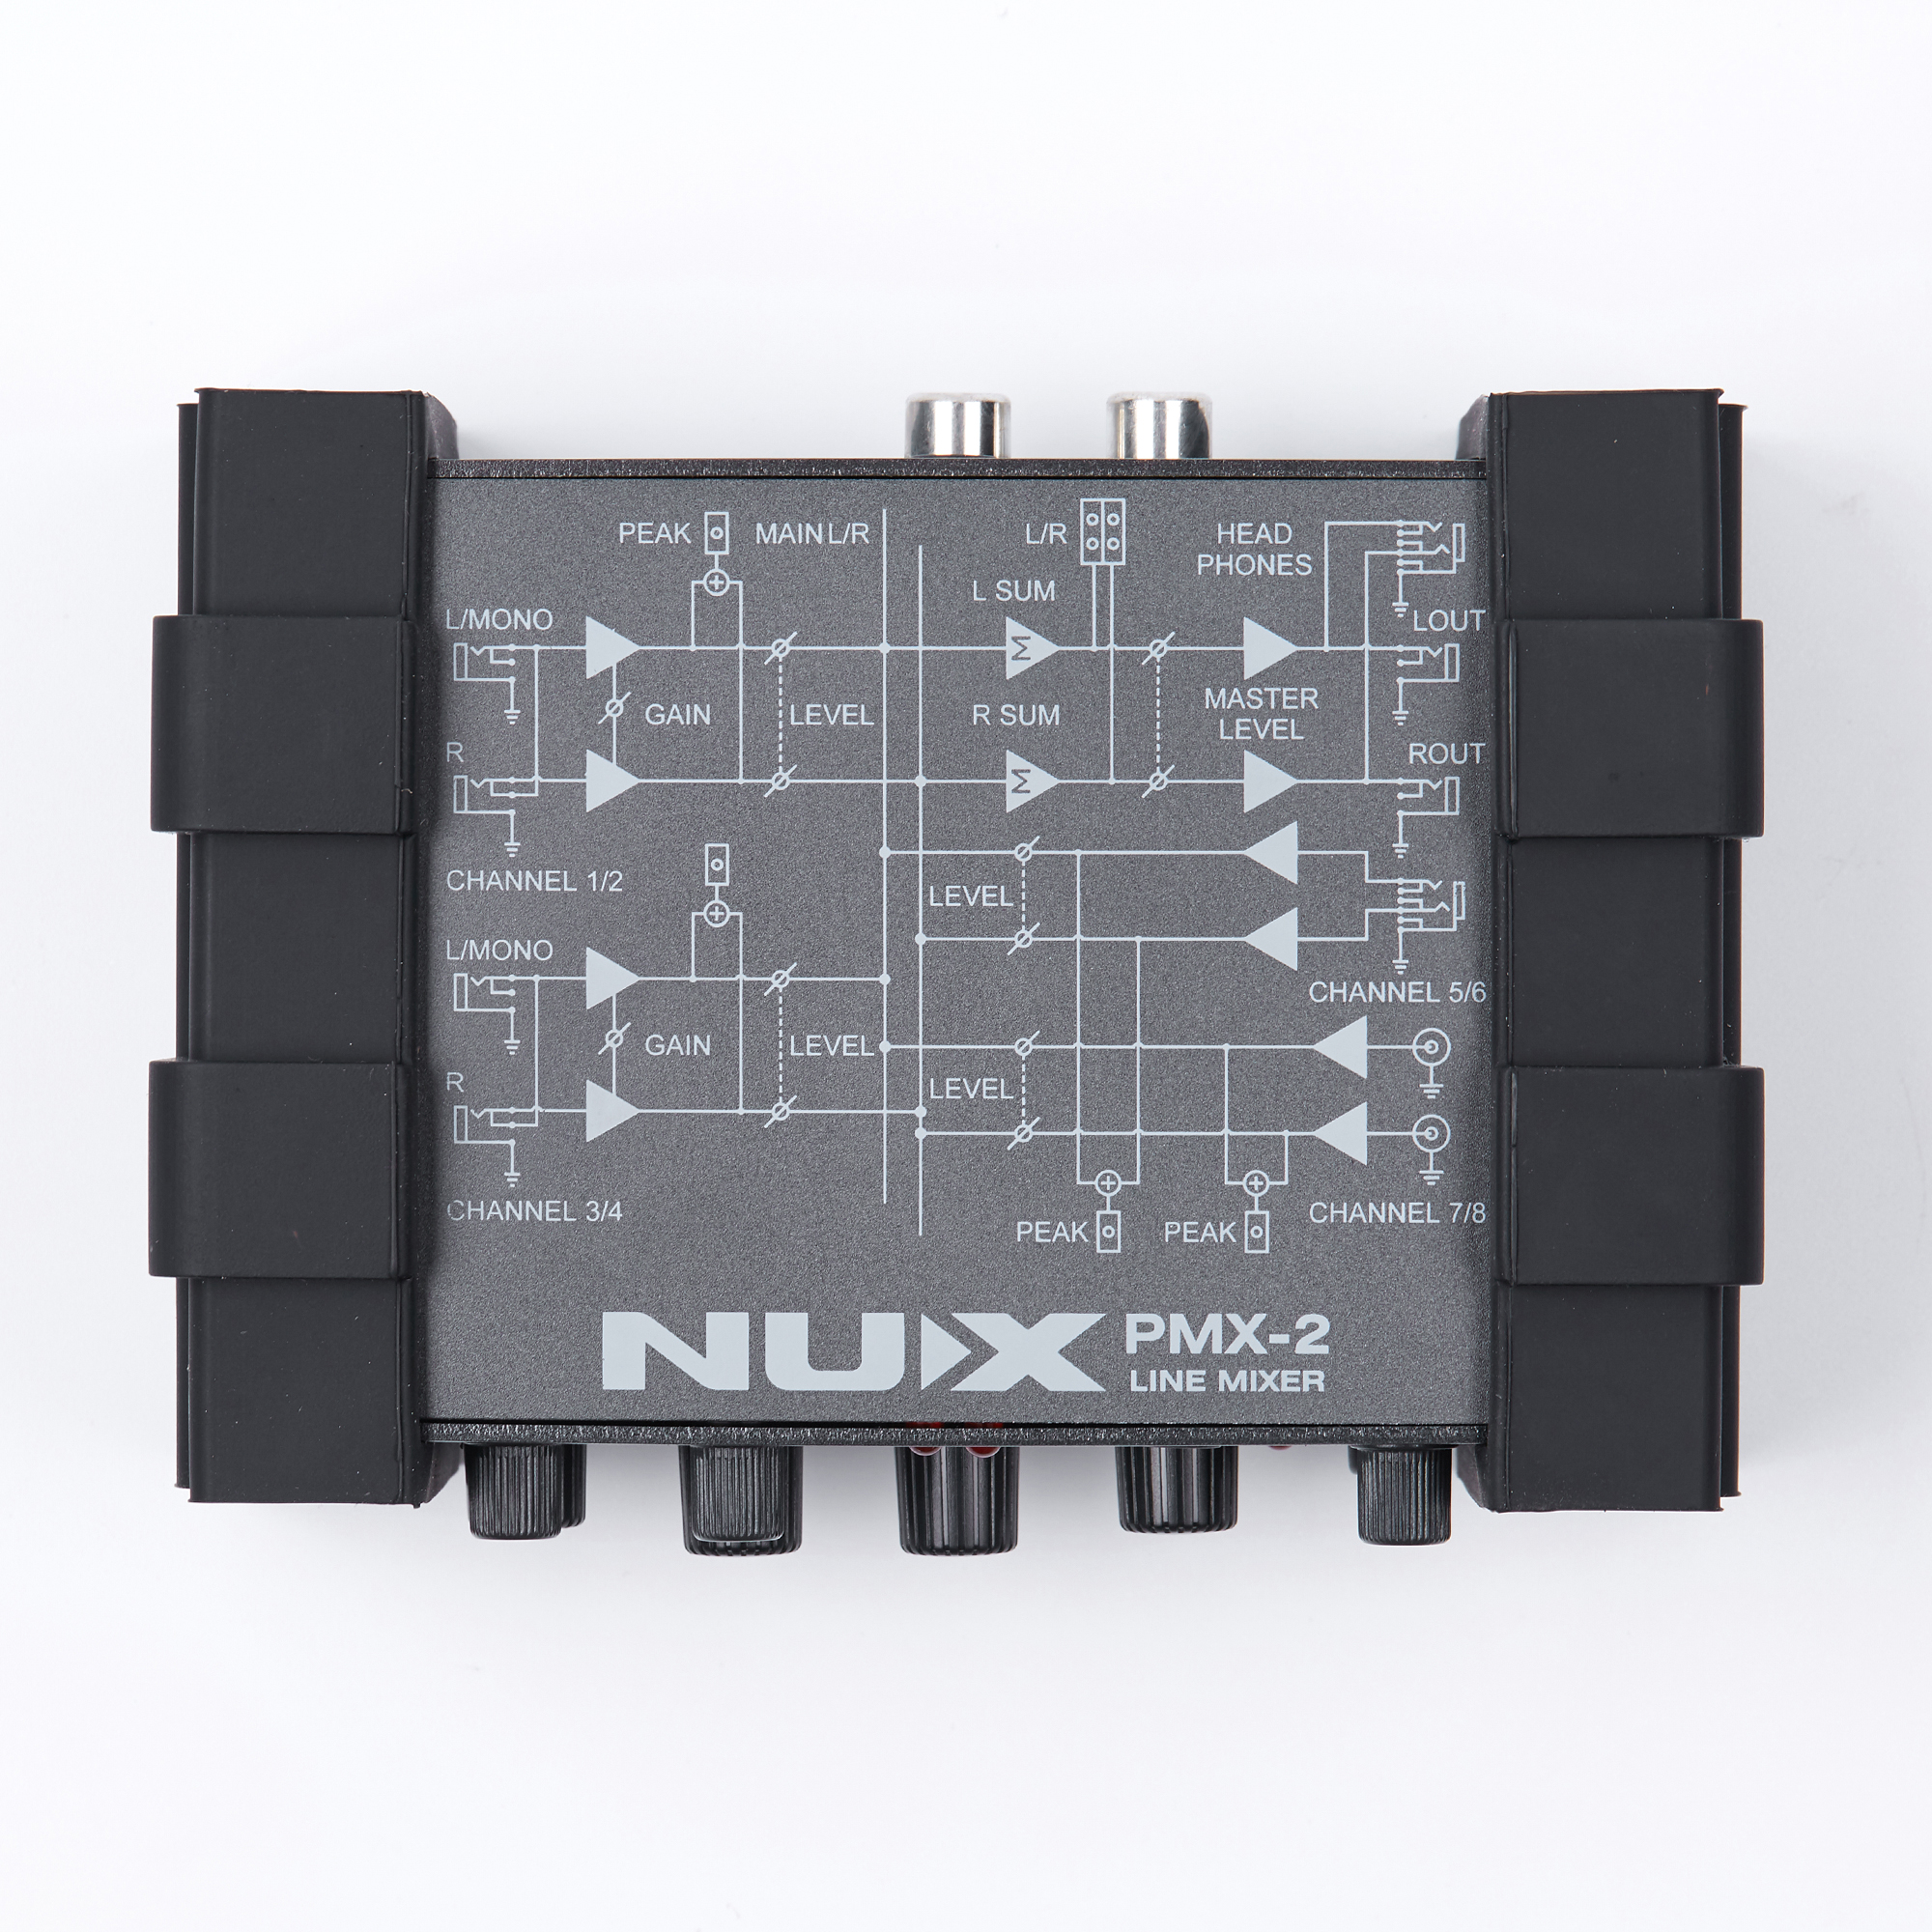 Gain Control 8 Inputs and 2 Outputs NUX PMX-2 Multi-Channel Mini Mixer 30 Musical Instruments Accessories for Guitar Bass Player nux pmx 2 new multi channel line mixer overload indicator 8 in 2 out mixer fit several audio devices for electric guitar bass